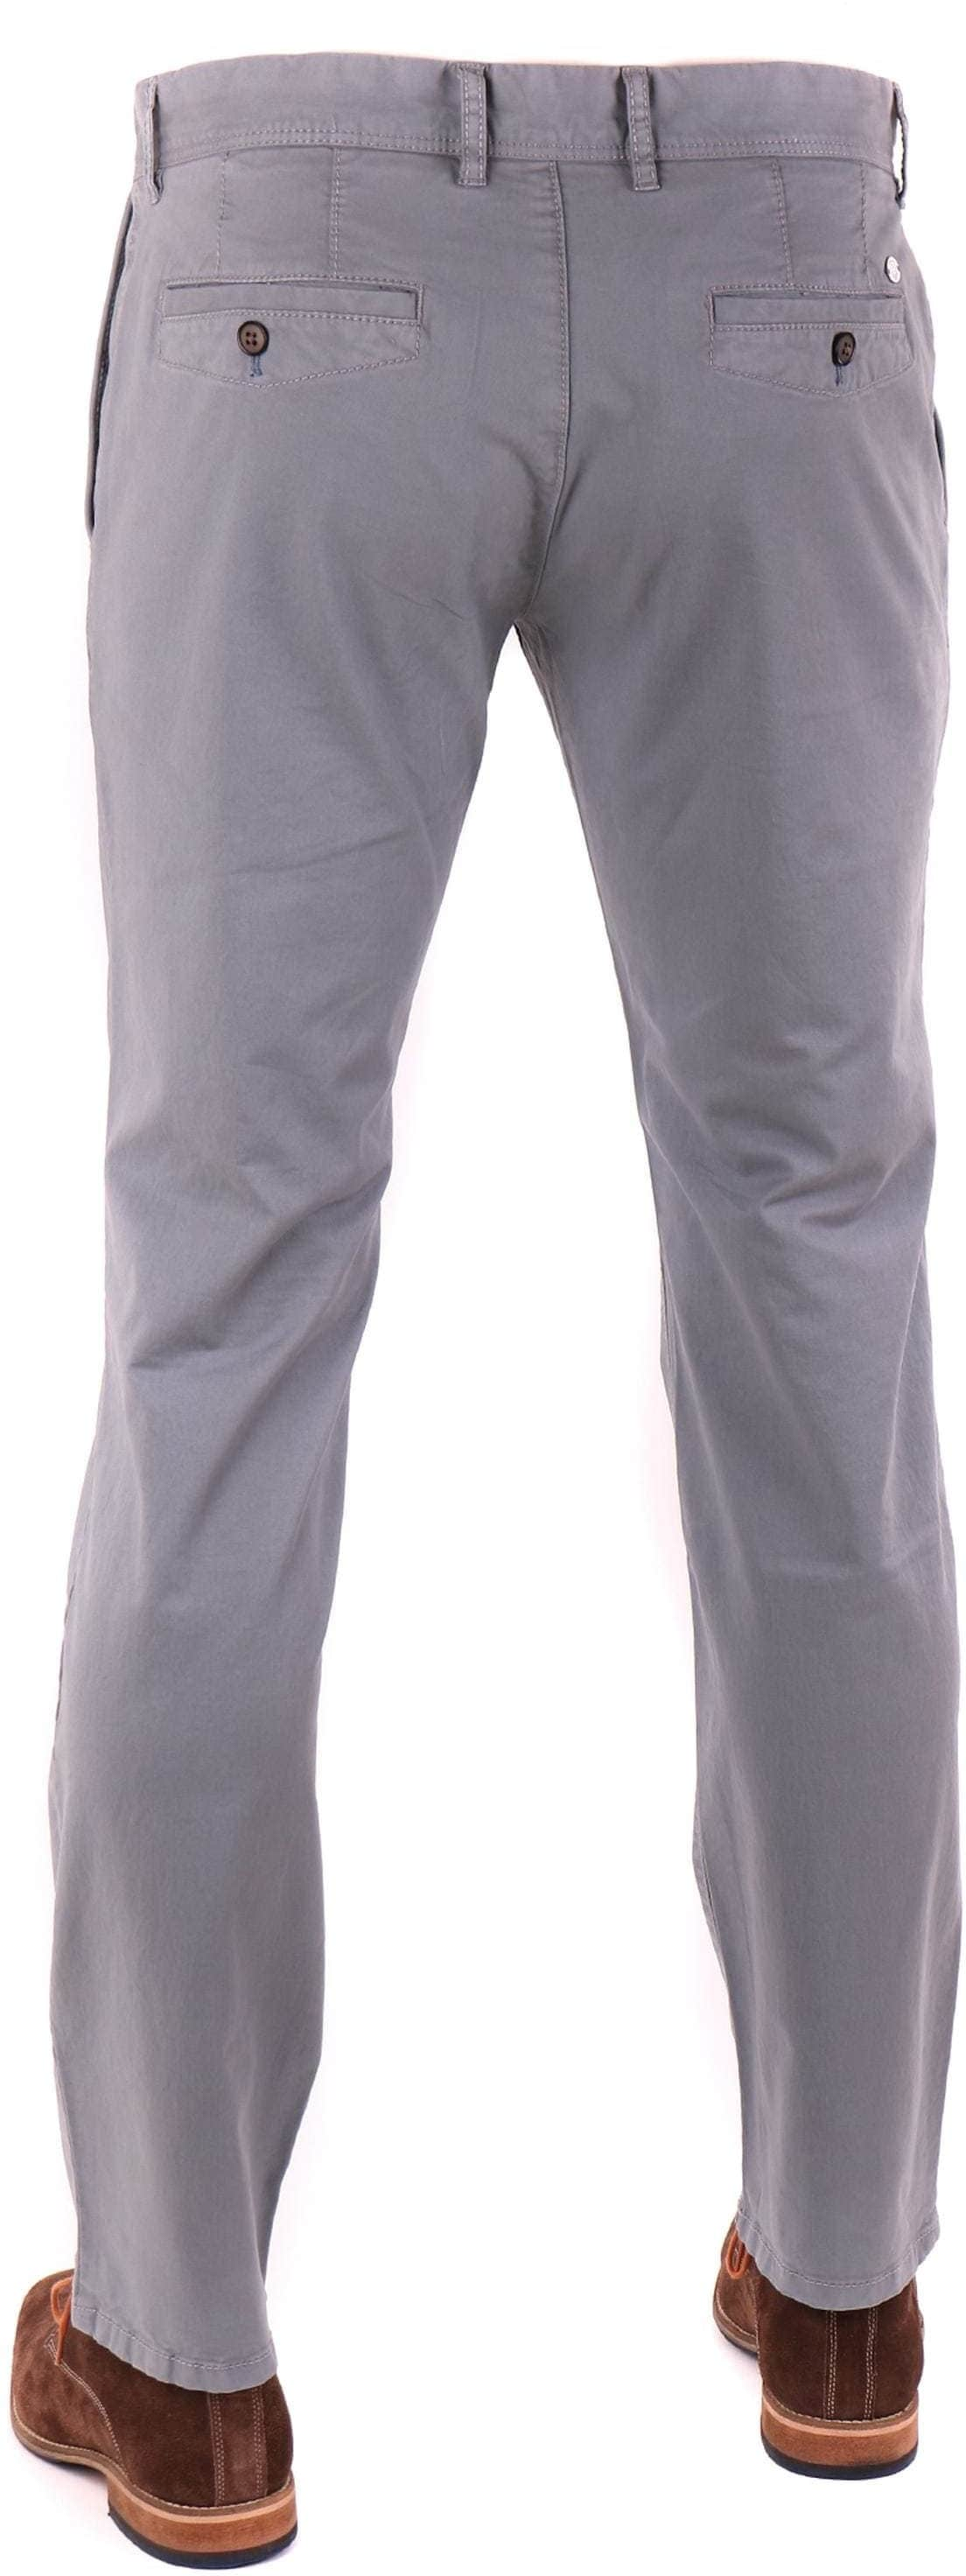 Suitable Chino Broek Grijs foto 1